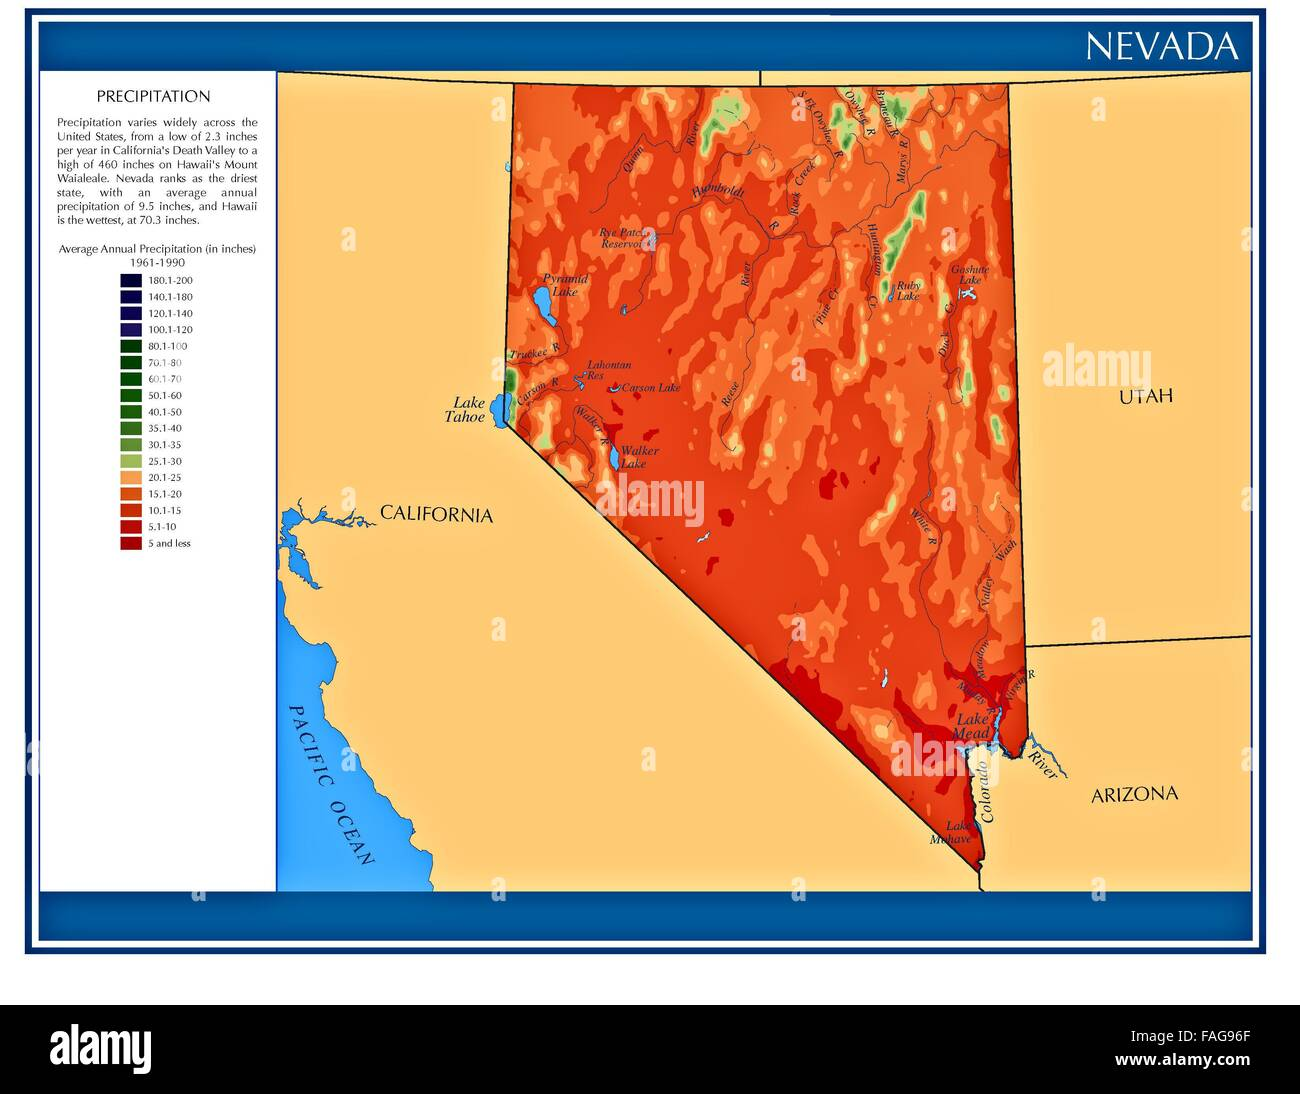 Nevada United States Water Precipitation Statistics Map By State Us Map California And Nevada